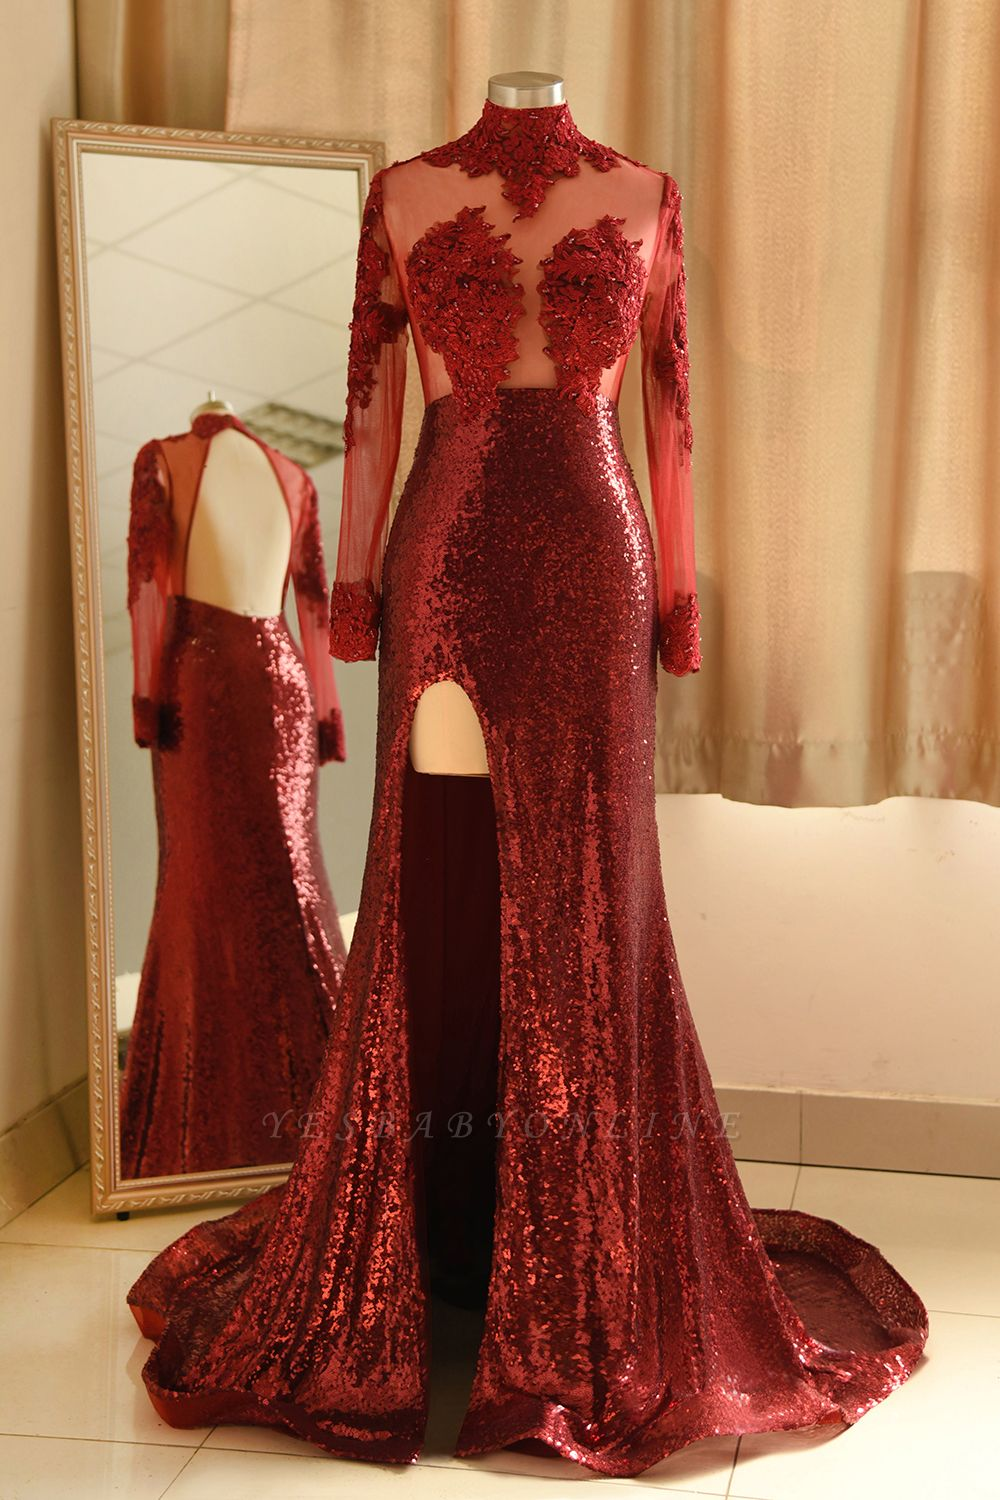 Burgundy High Neck Open Back Long Sleeve Applique Sequin Side Slit Sheath Prom Dresses